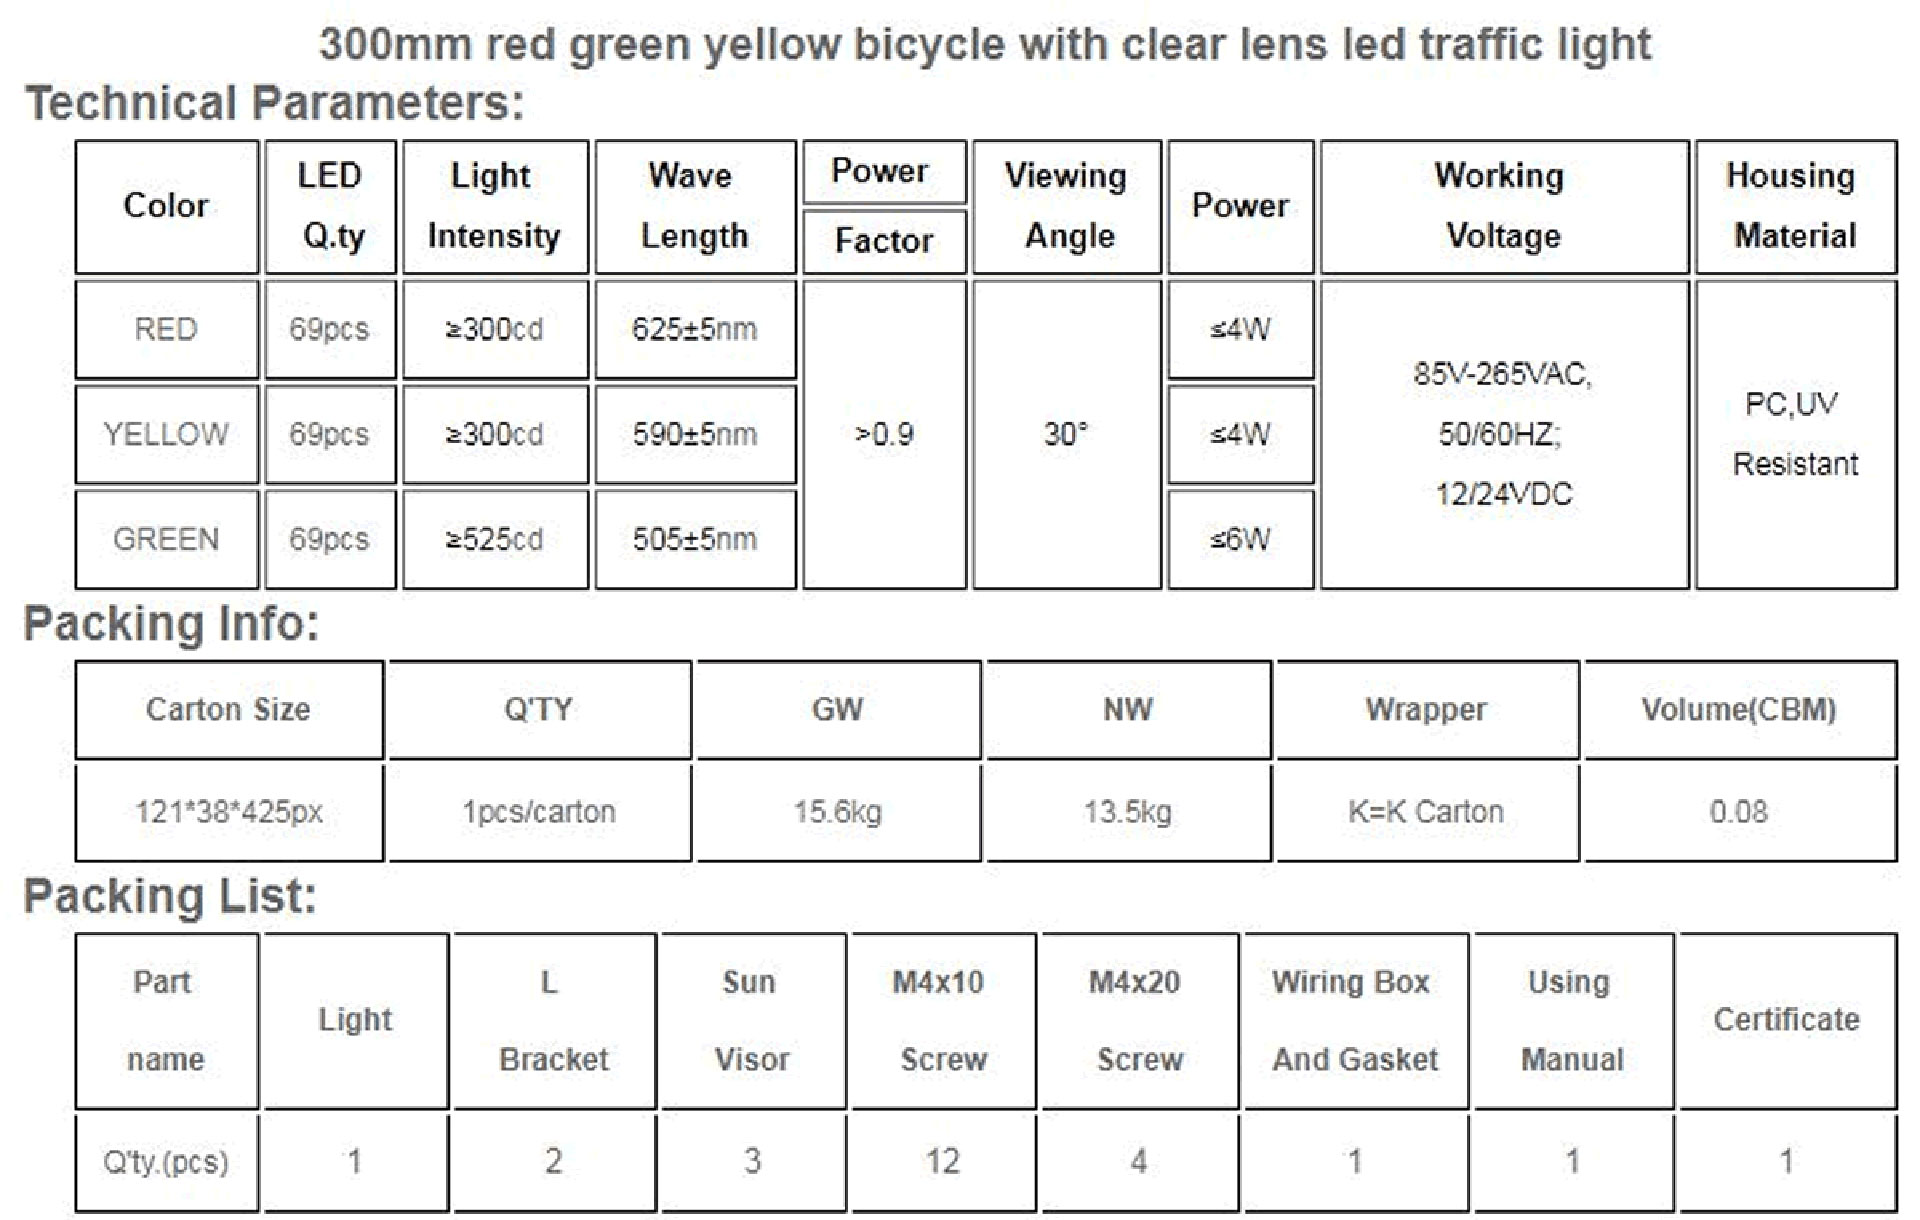 Specifications of 300mm LED traffic lights